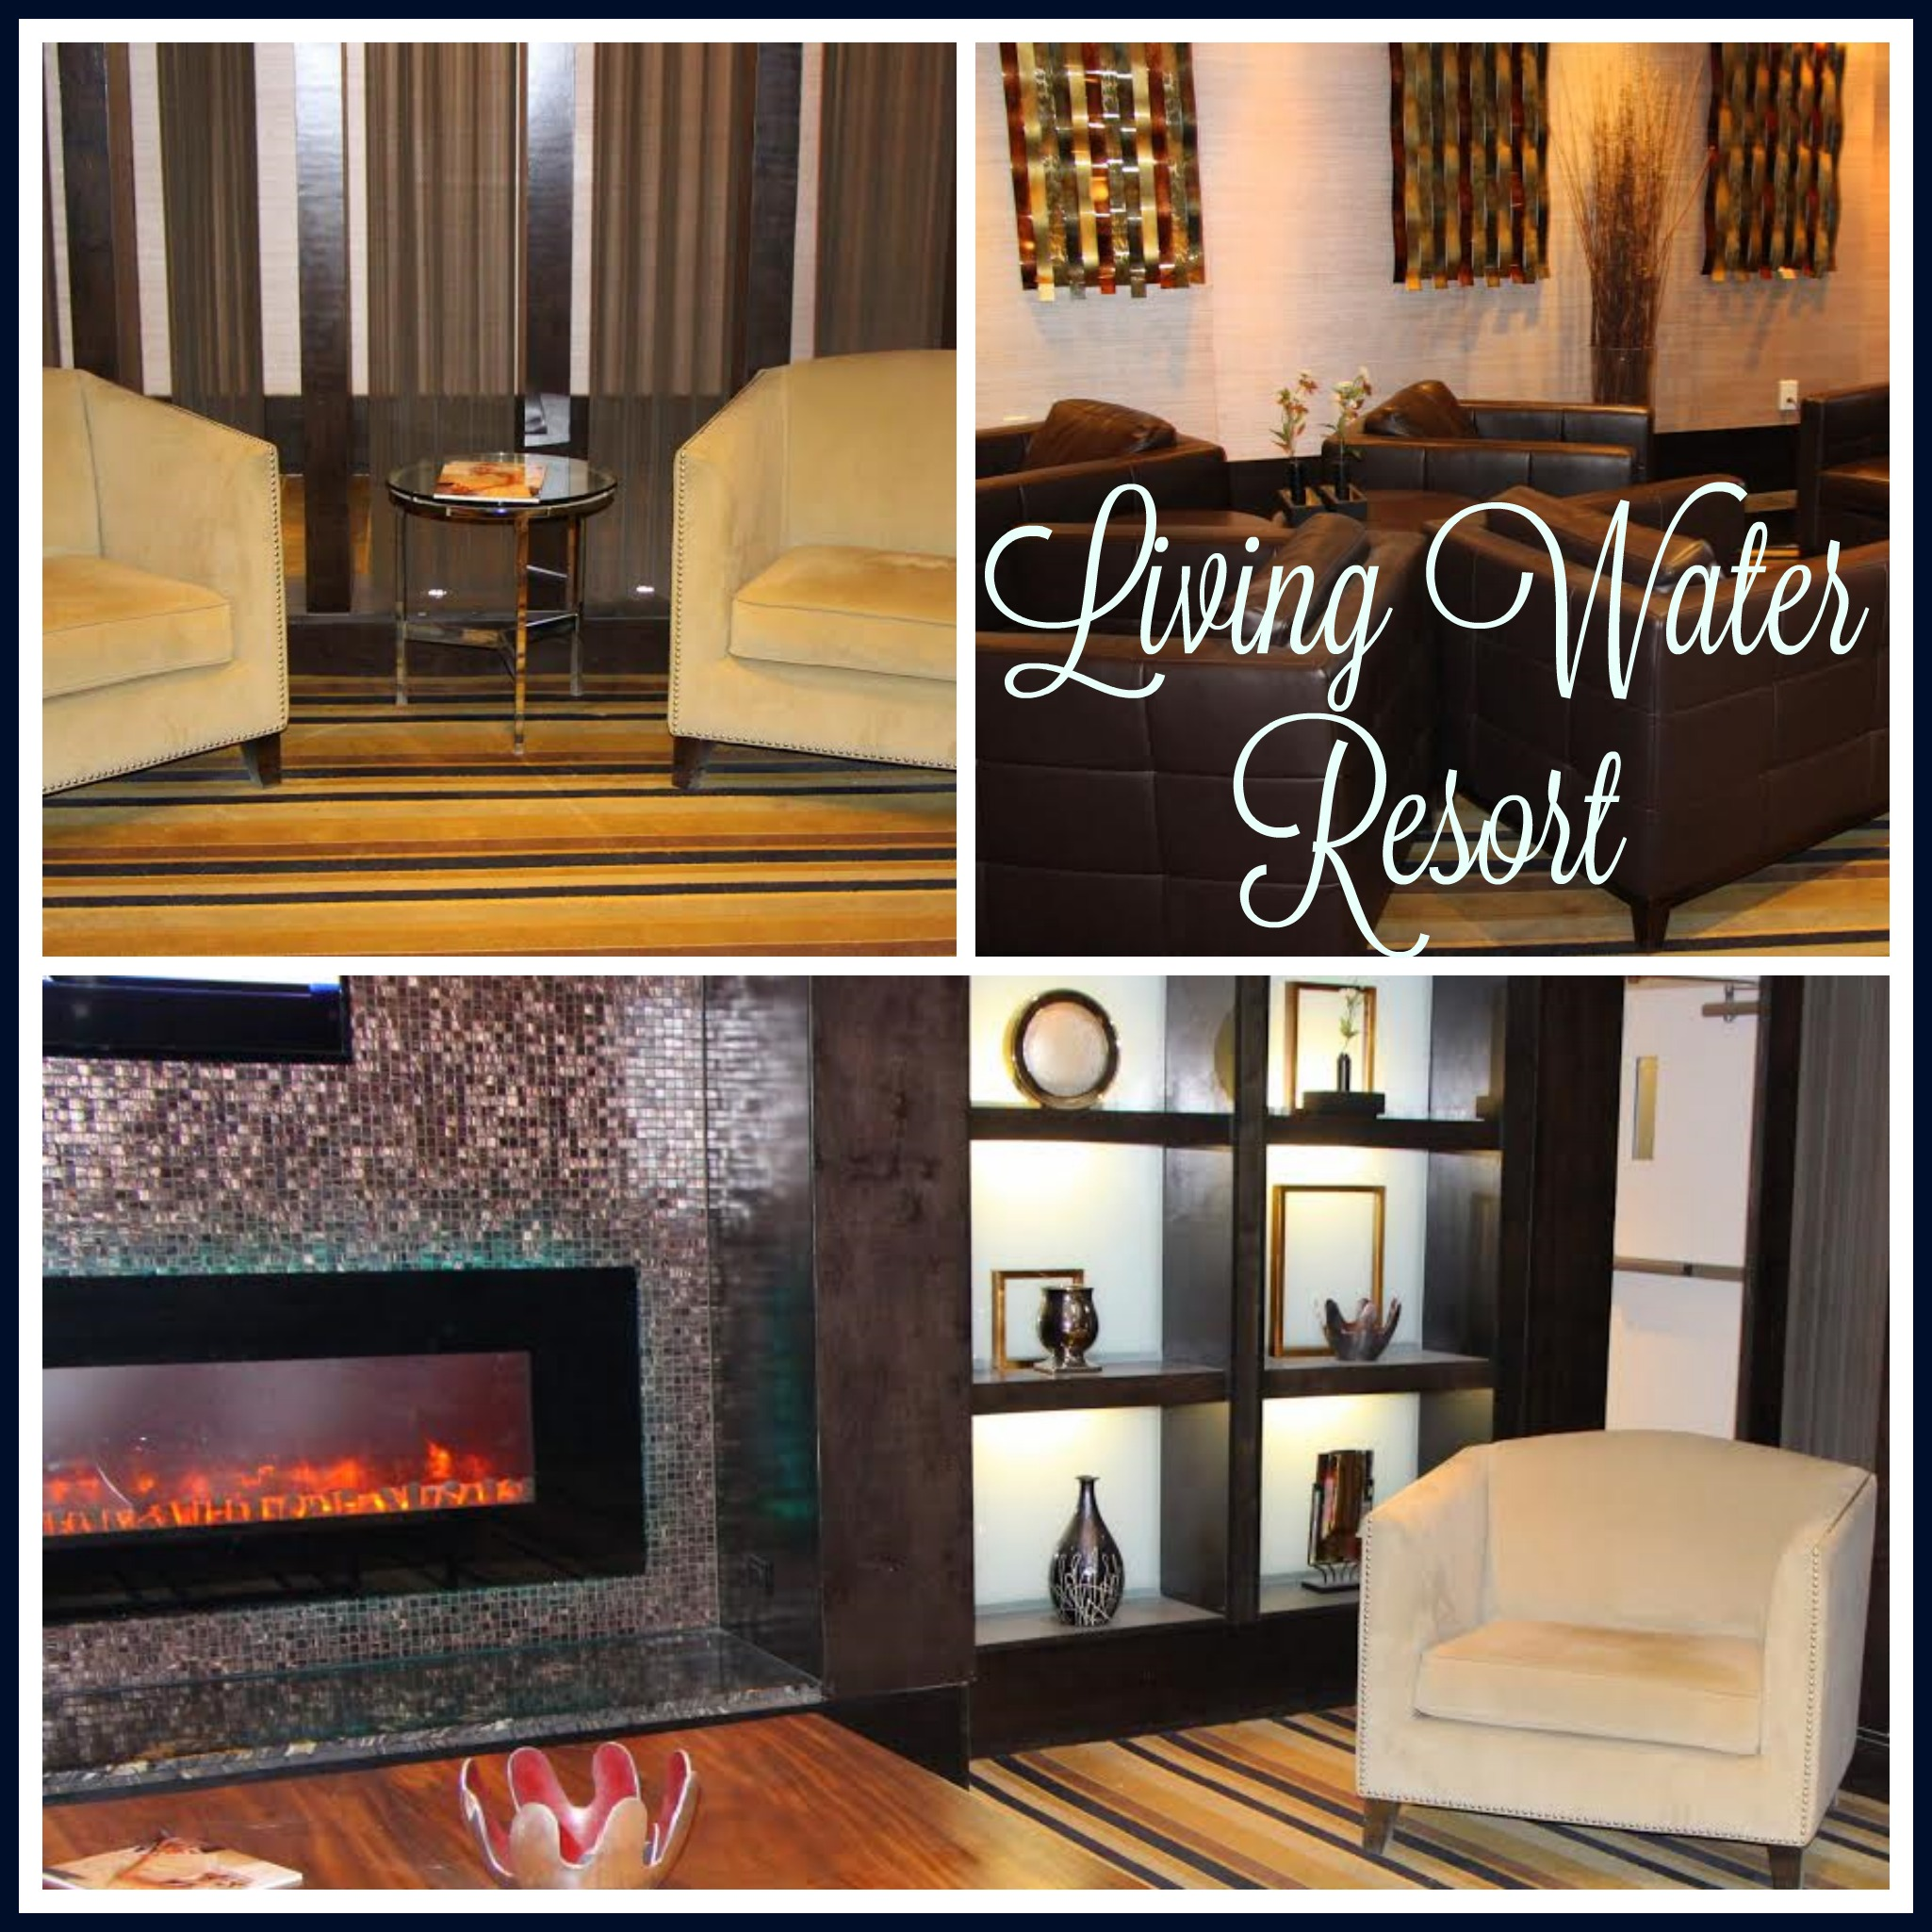 Living Water Resort: A Home Away From Home at Blue Mountains ...